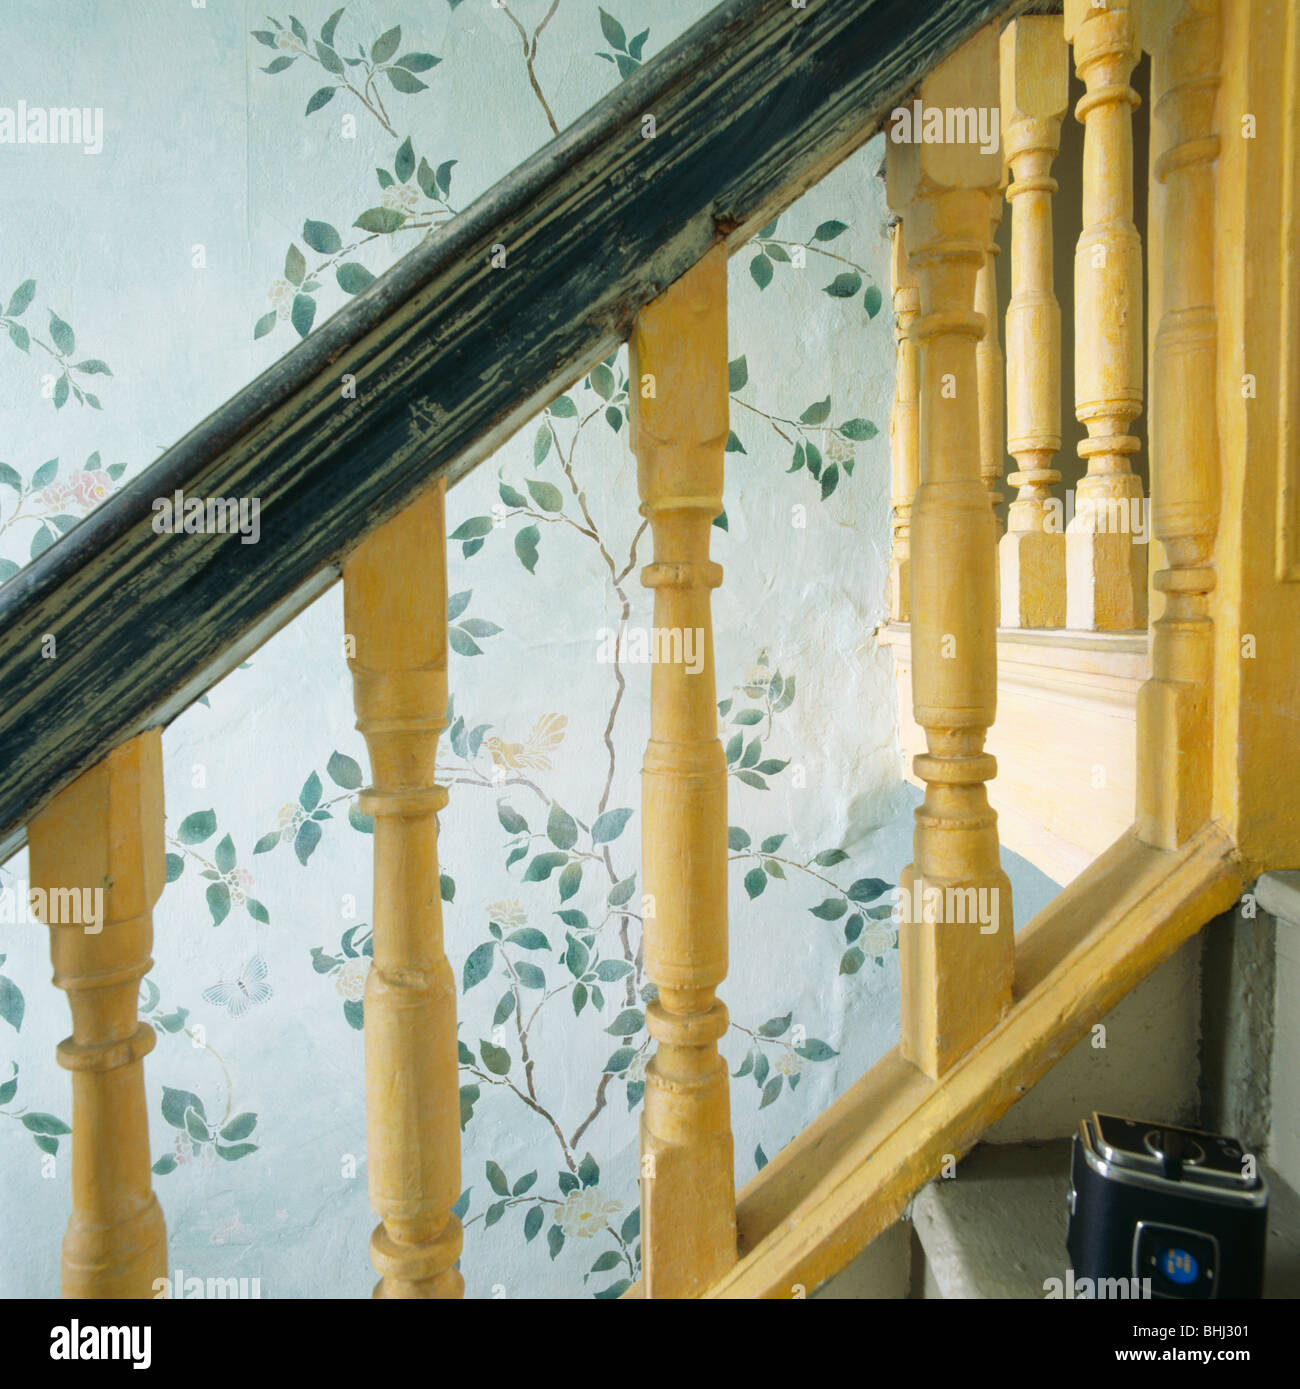 Outstanding Decorating Wall Going Up Stairs Crest - Wall Art ...